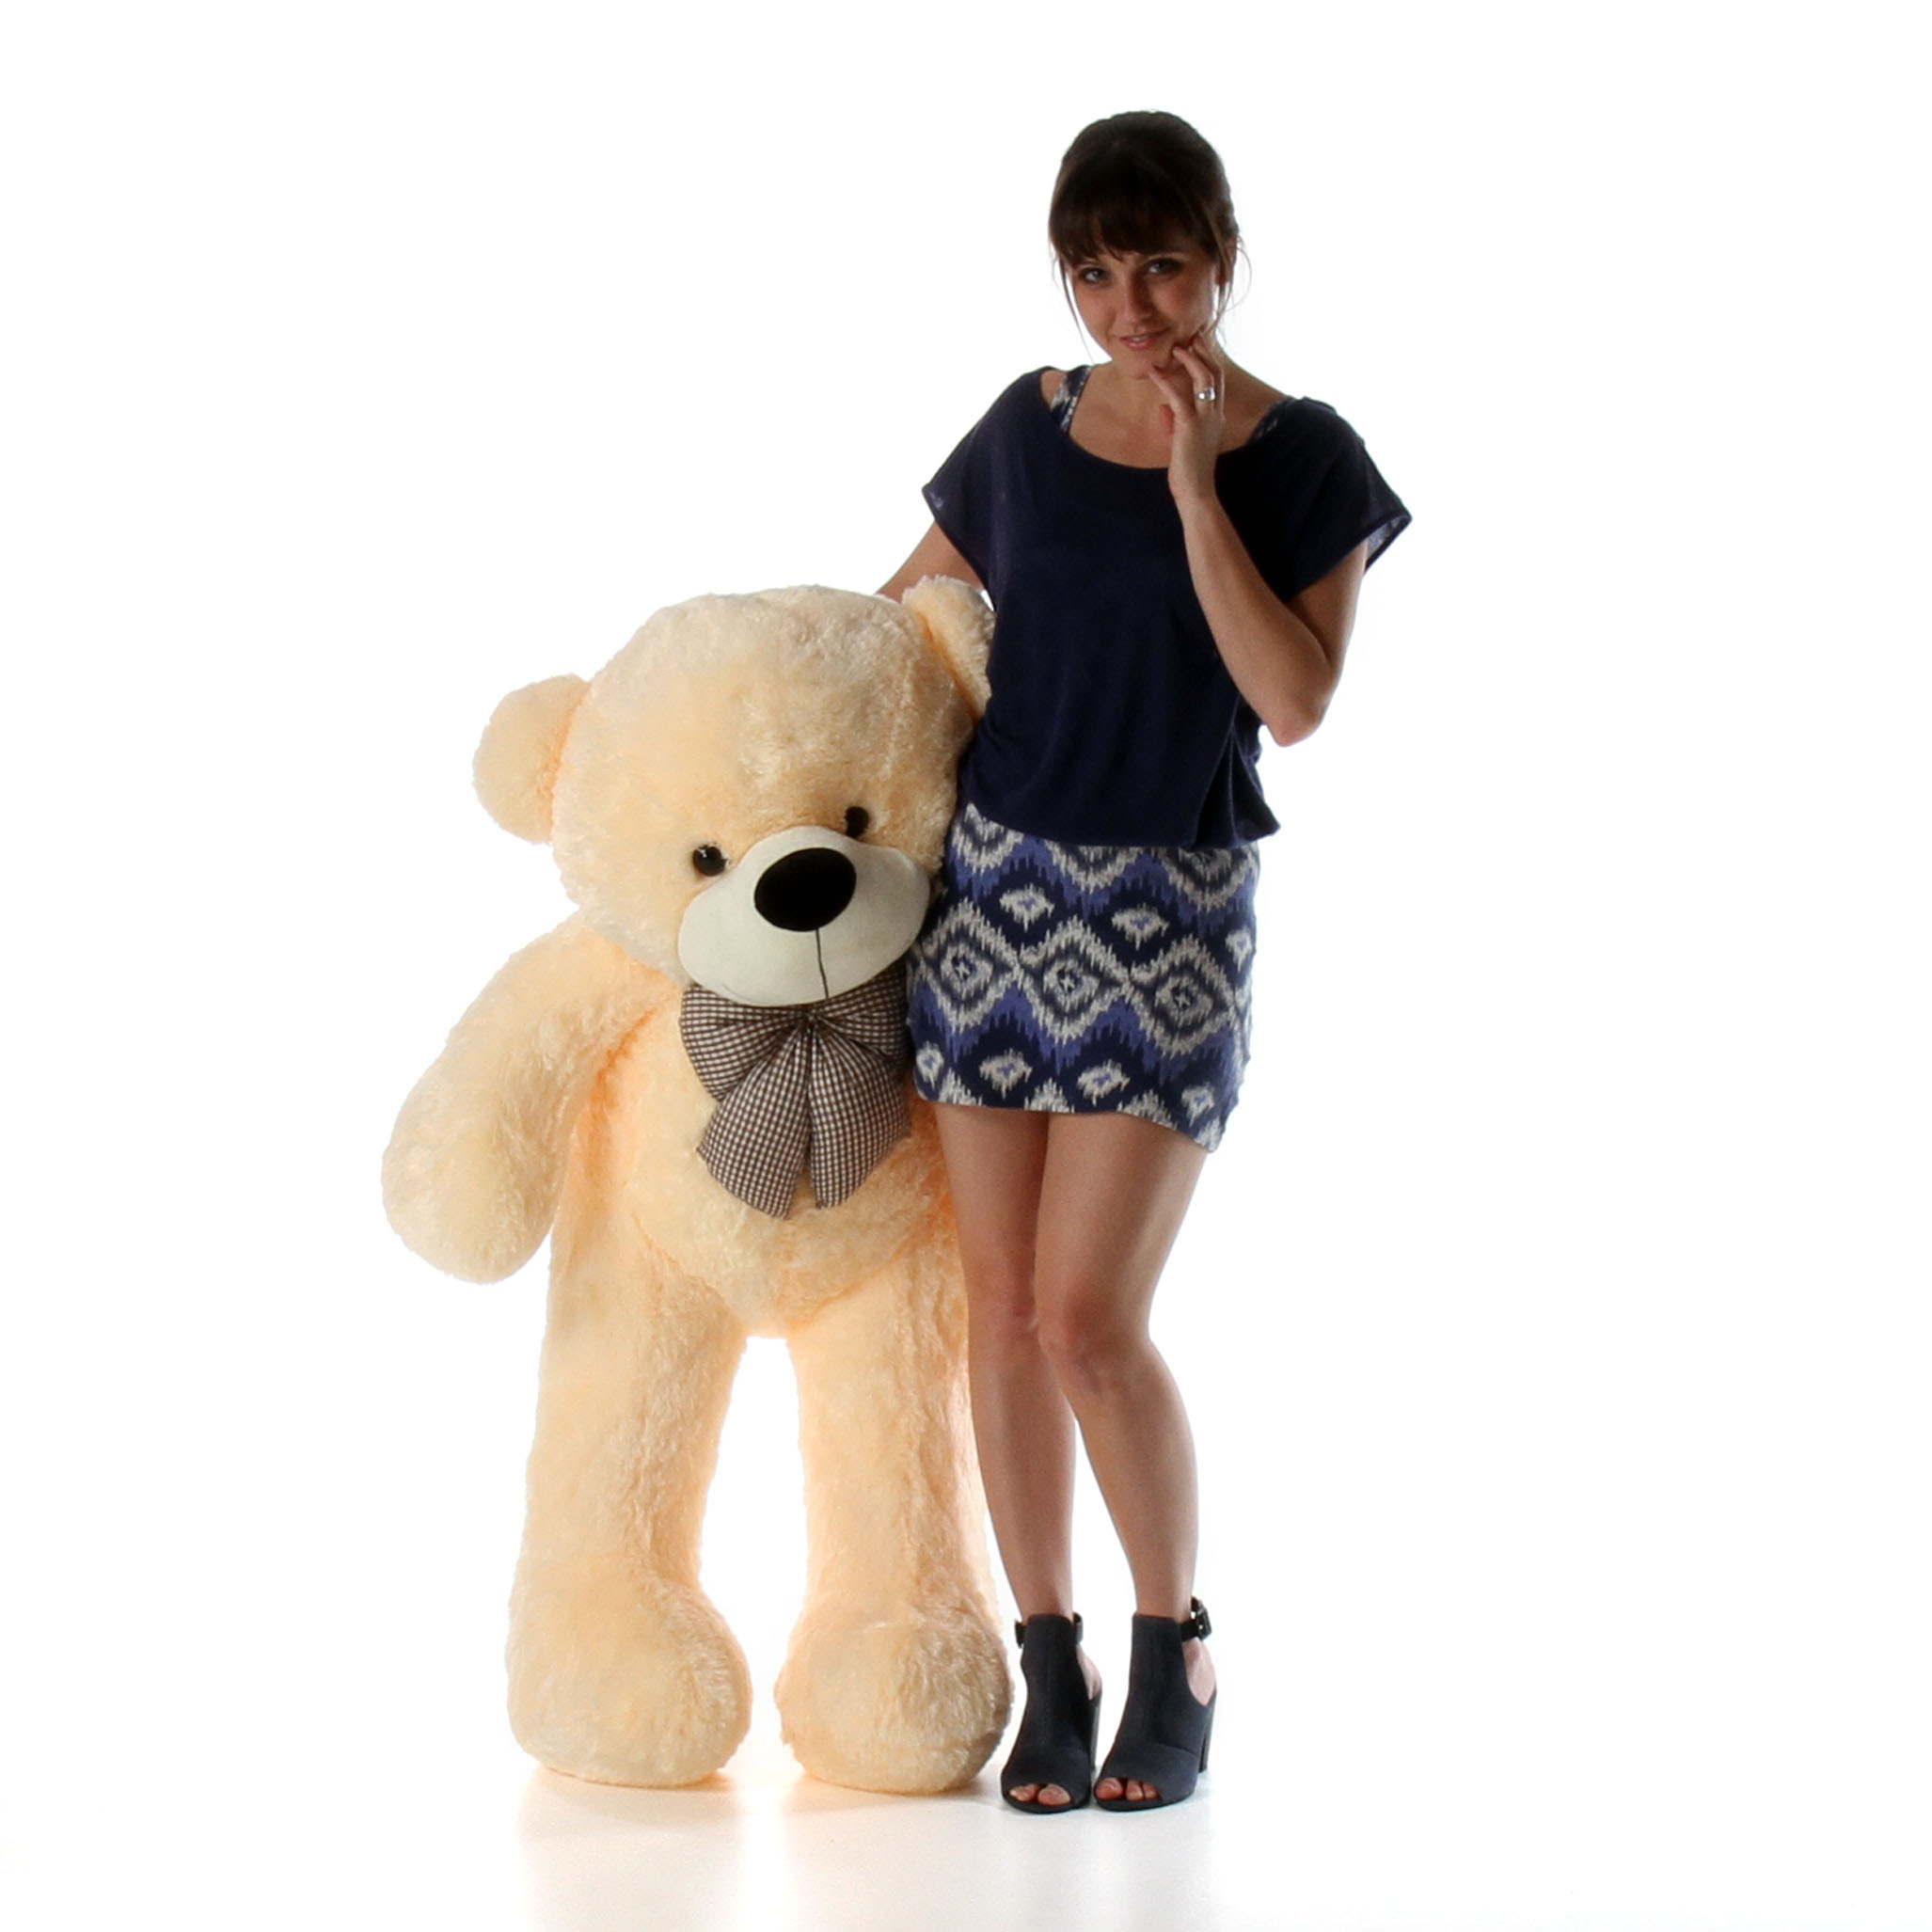 cozy-cuddles-is-a-life-size-teddy-bear-48in.jpg